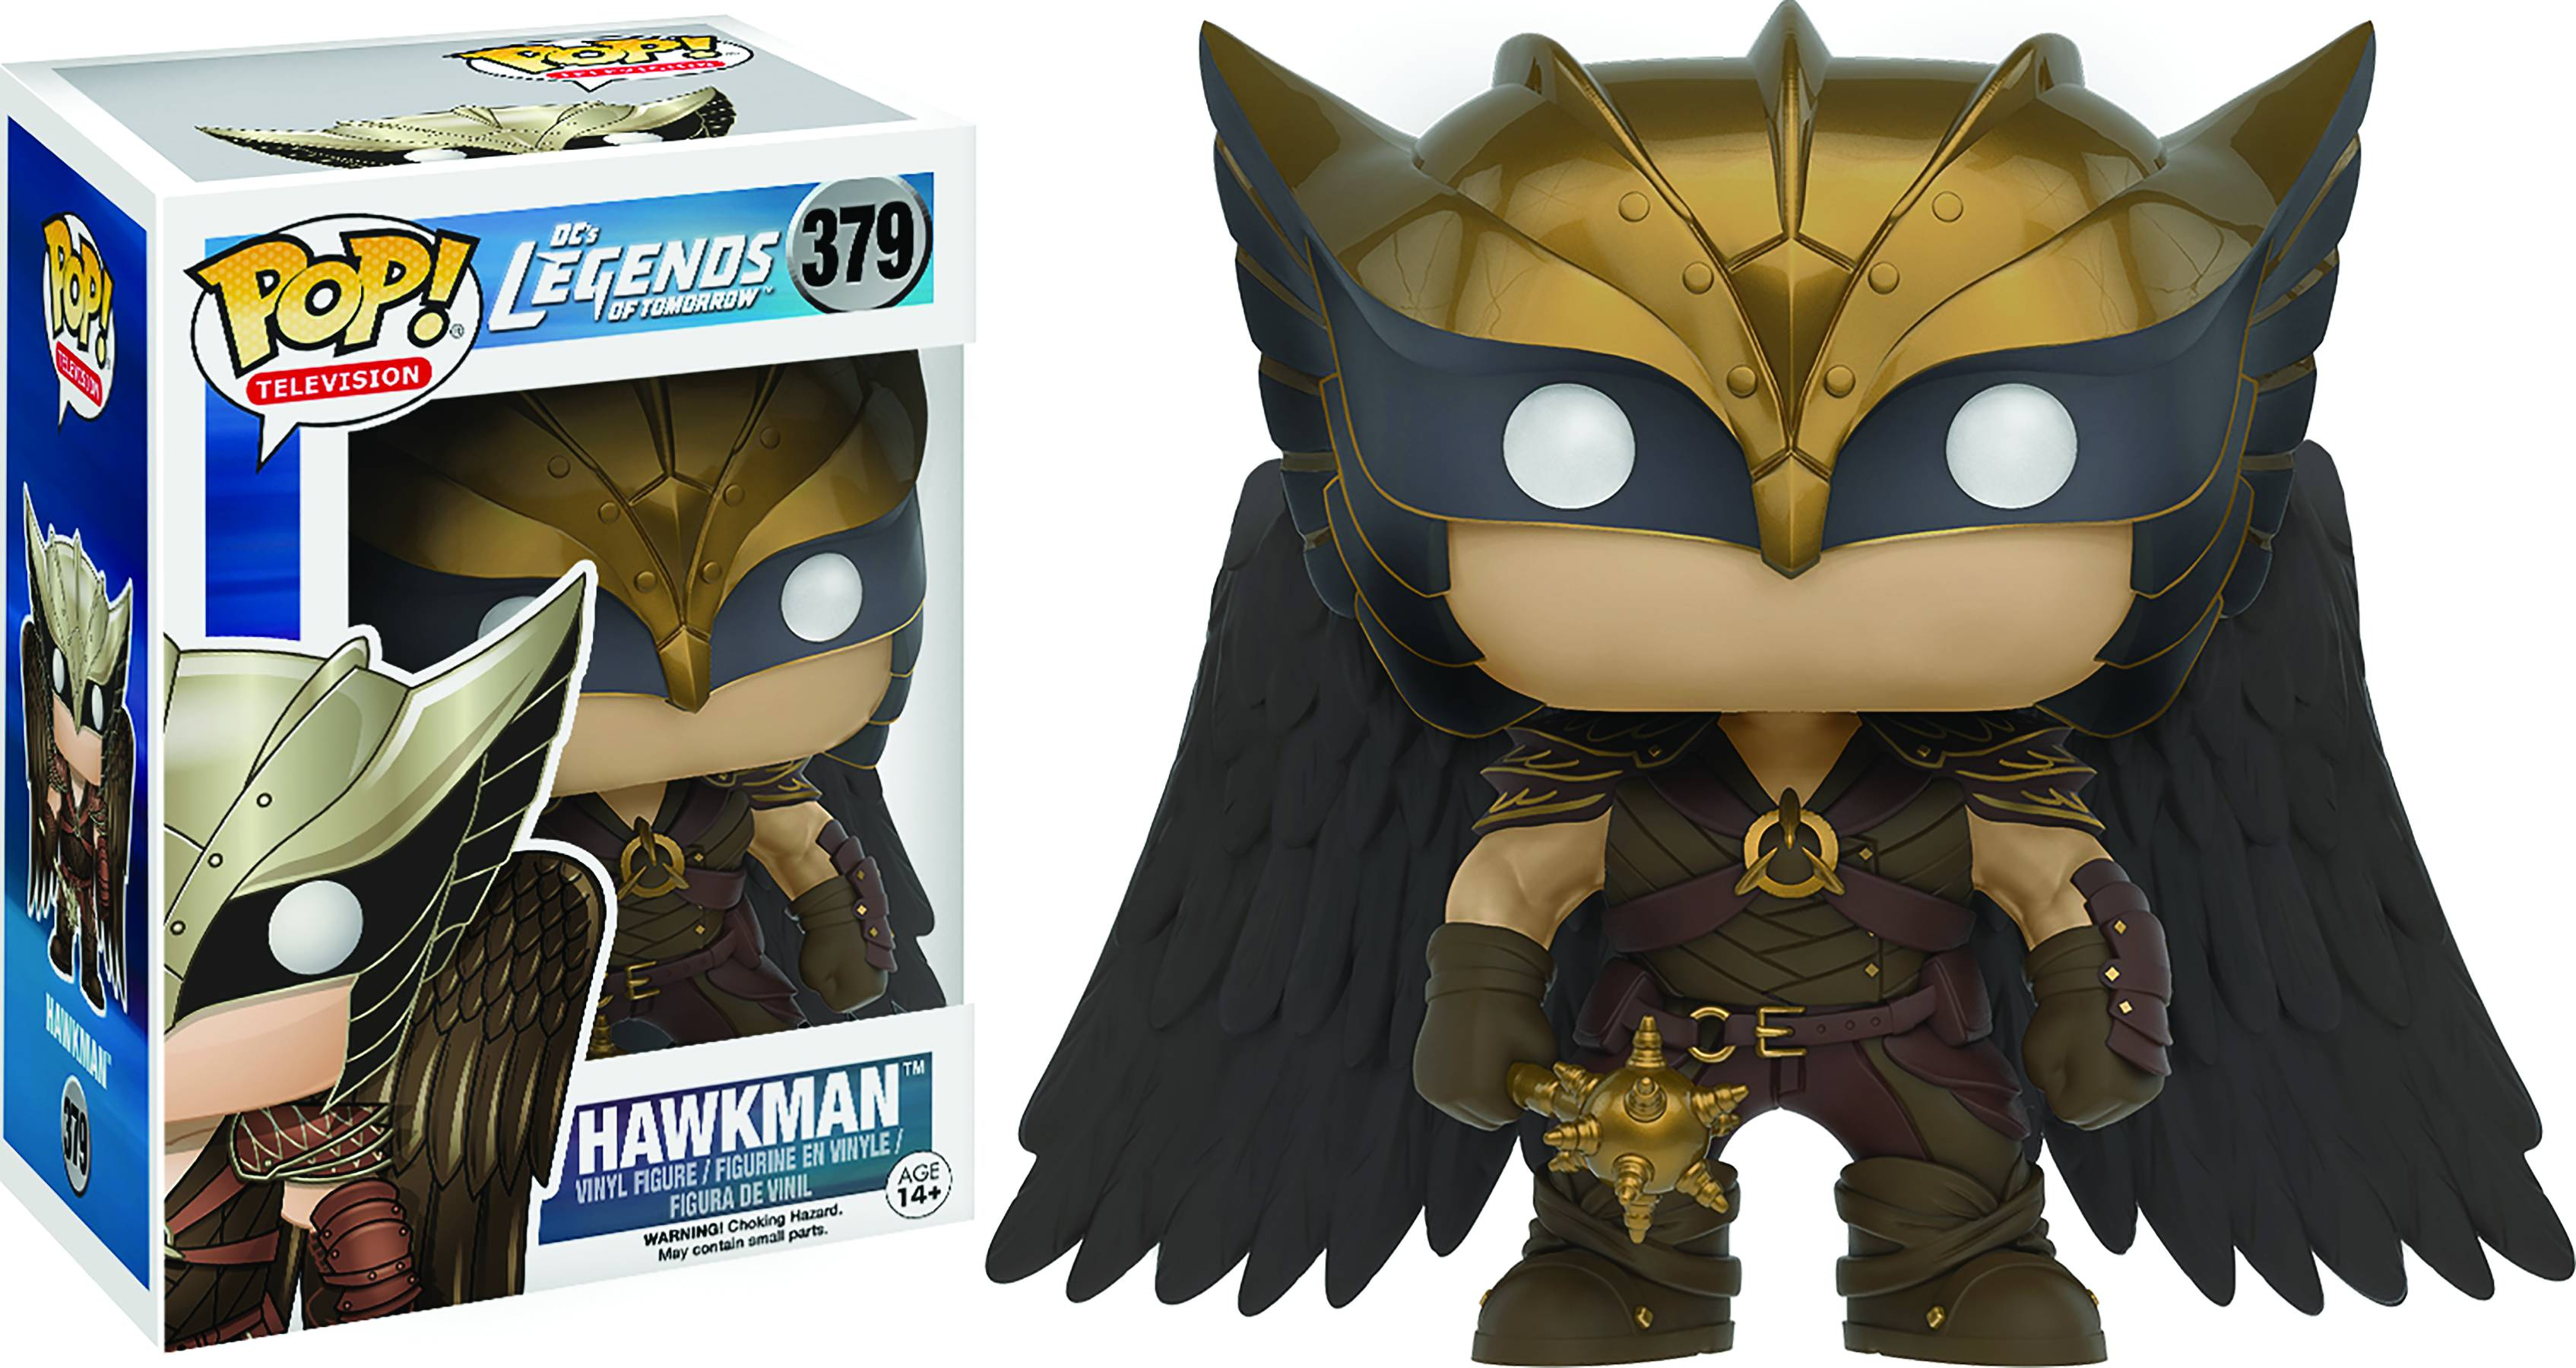 POP LEGENDS OF TOMORROW HAWKMAN VINYL FIG